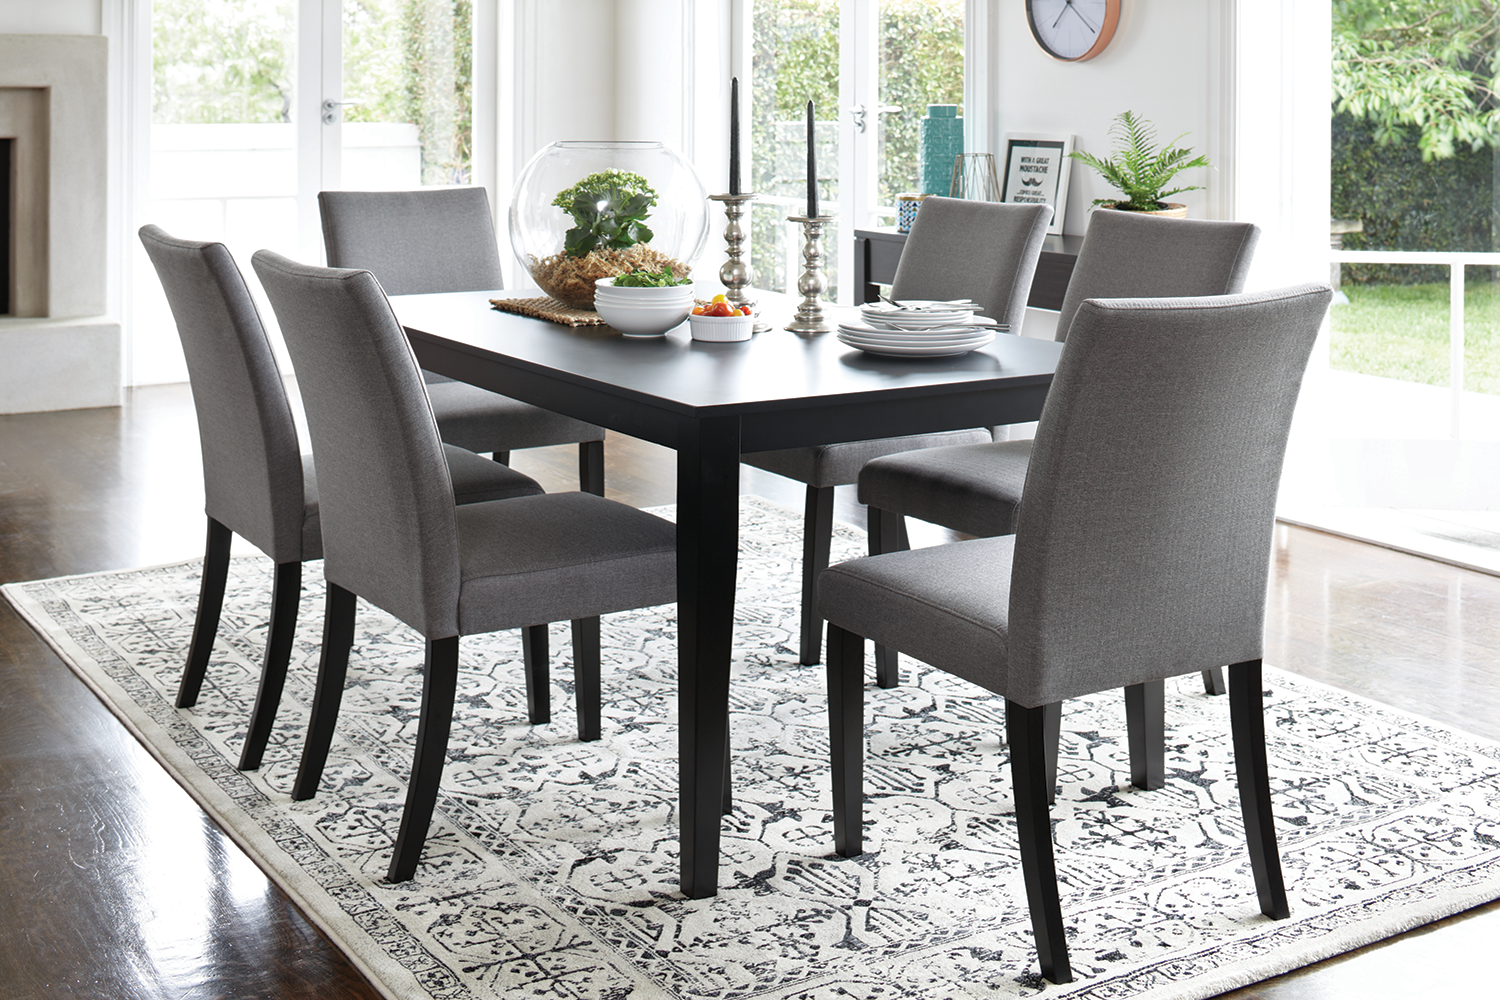 Monza 7 Piece Dining Suite by Paulack Furniture